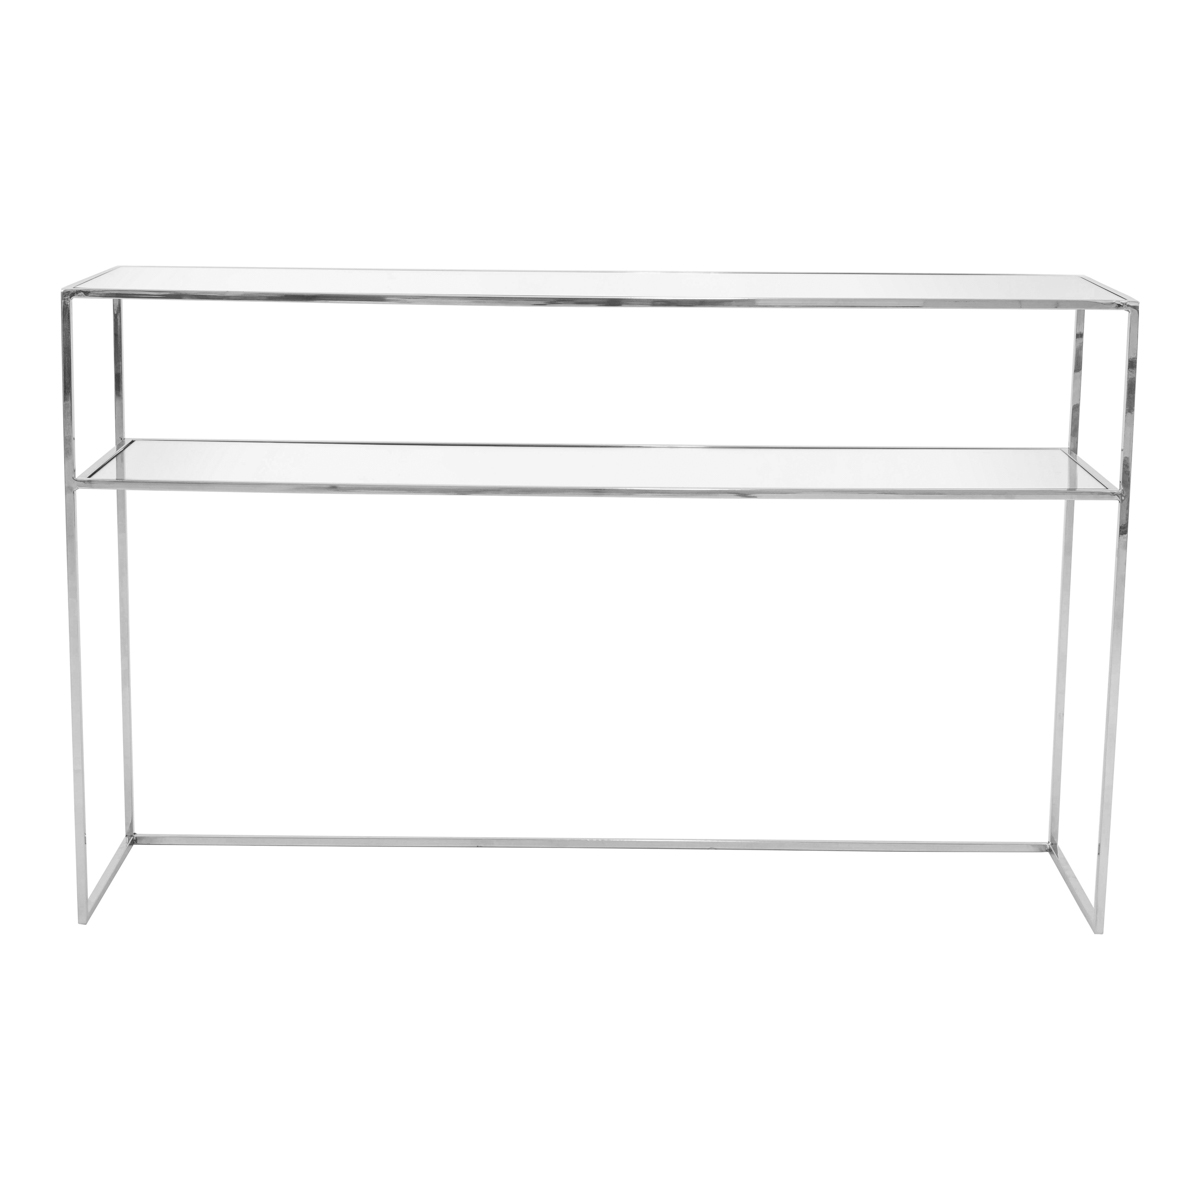 Gazelle Console 130 cm – Chrome